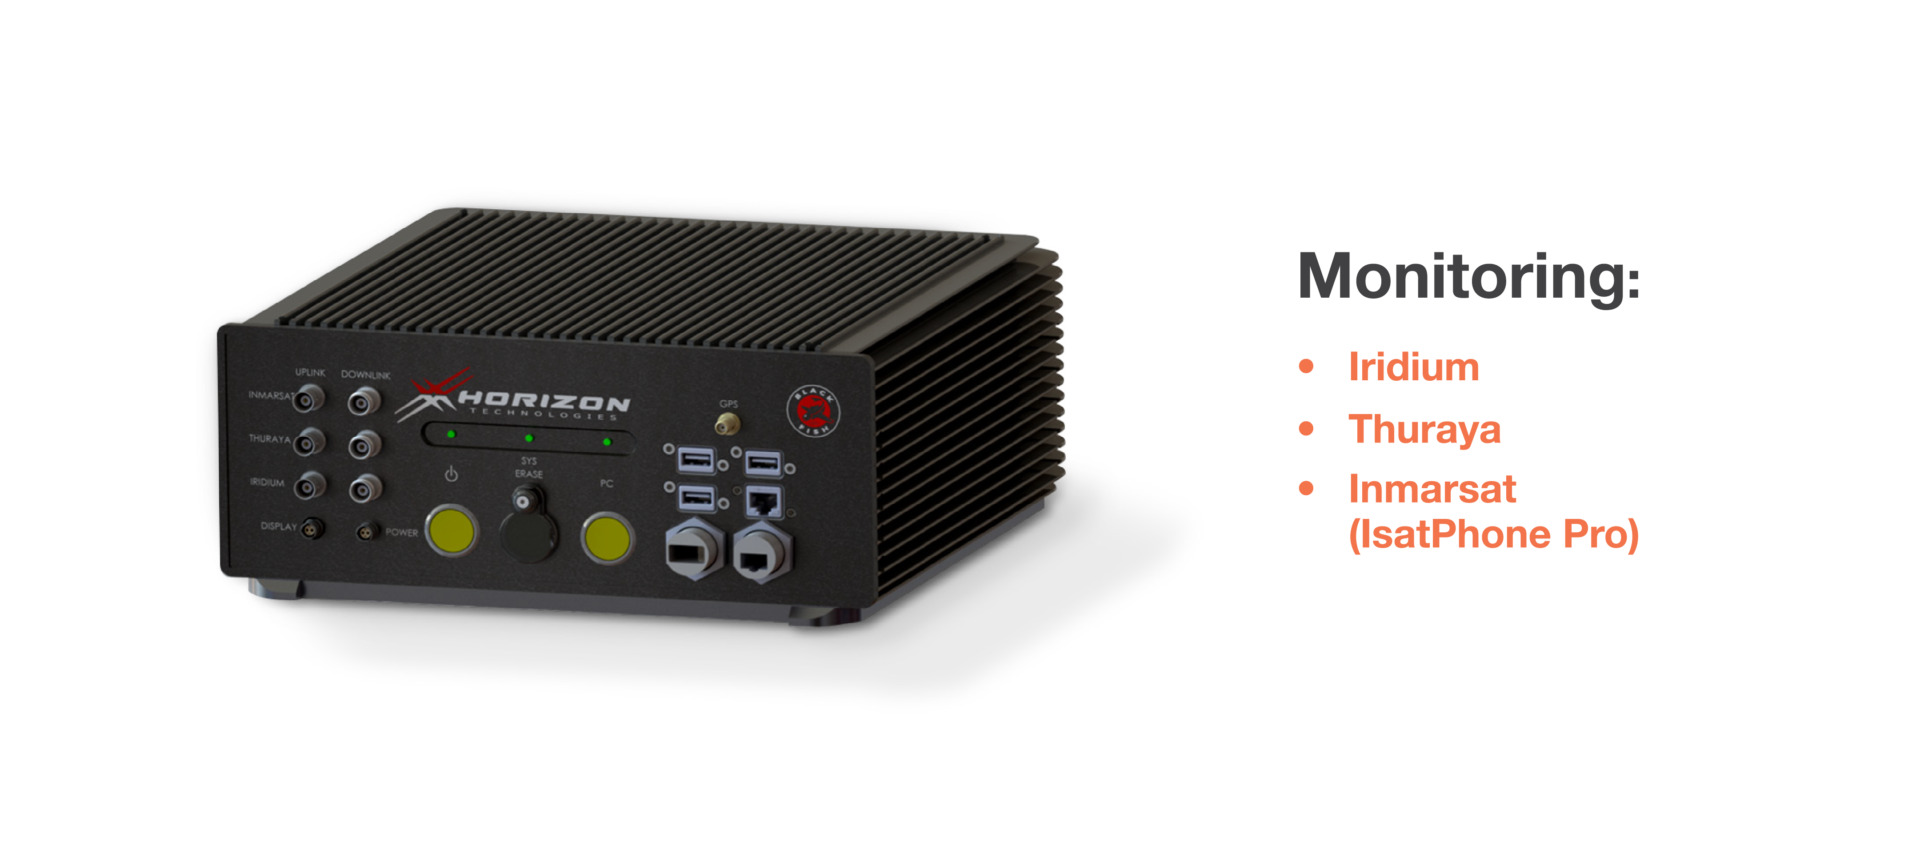 Horizon Technologies Announces New BlackFish™, a small airborne qualified, Sat Phone SIGINT system which simultaneously monitors the Iridium, Thuraya, and Inmarsat IsatPhone Pro.